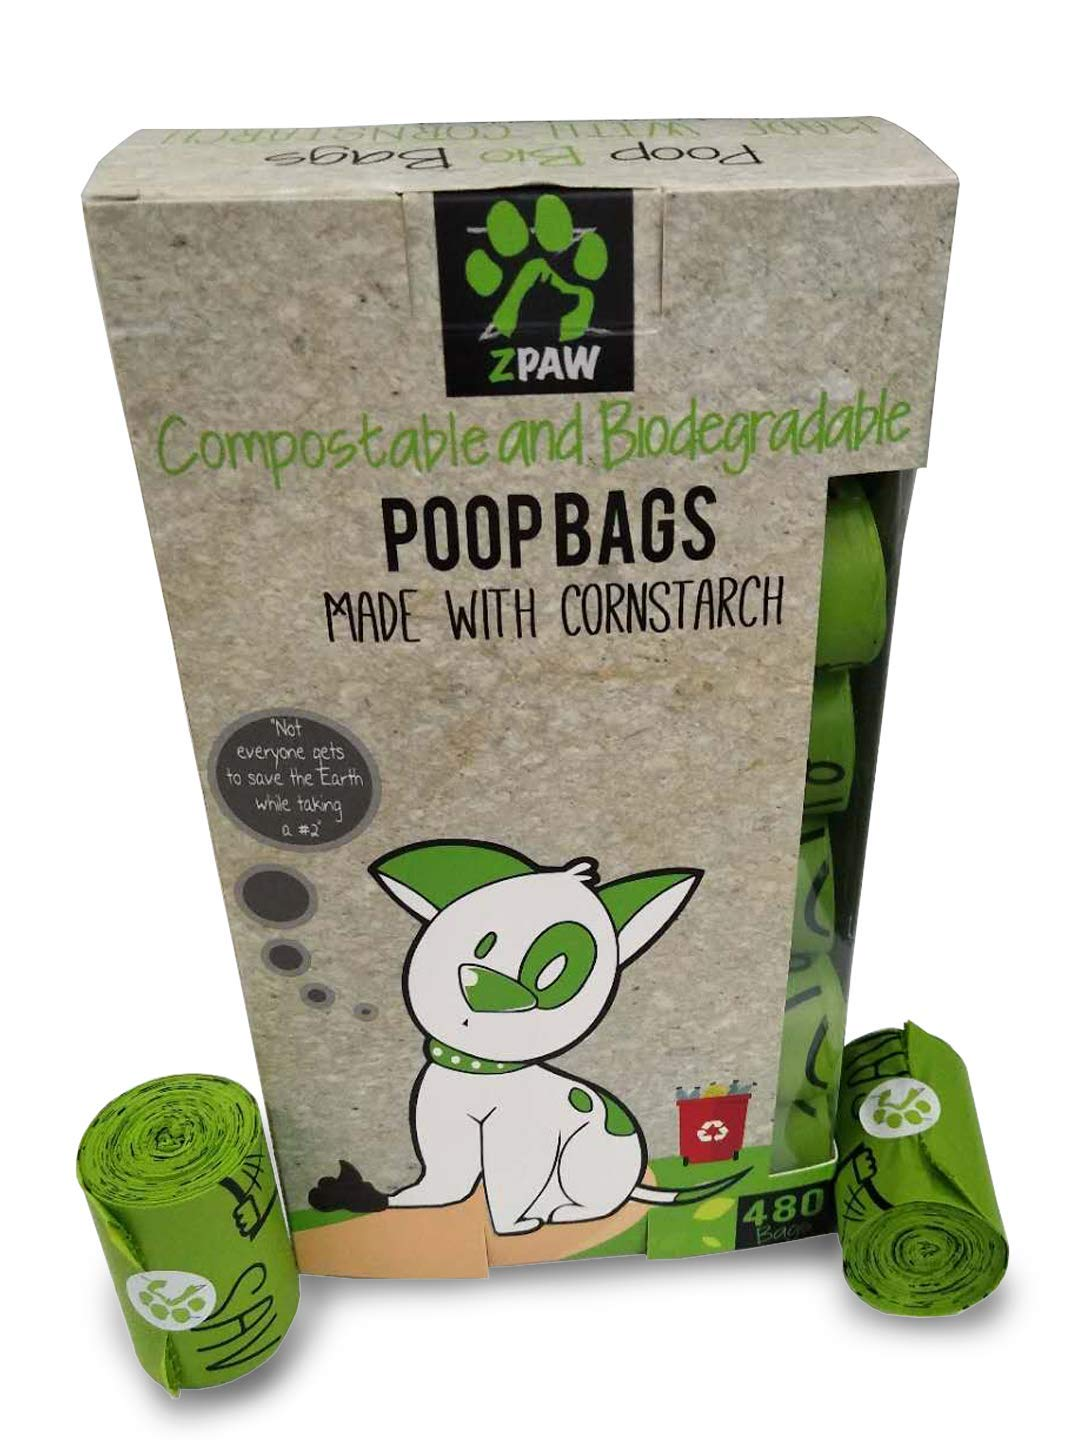 ZPAW Compostable and Biodegradable Dog Poop Bags Made with Corn Starch   Large Environmentally Friendly Dog Waste Bags Certified 100% Compostable and Biodegradable (480 Pet Waste Bags) by ZPAW